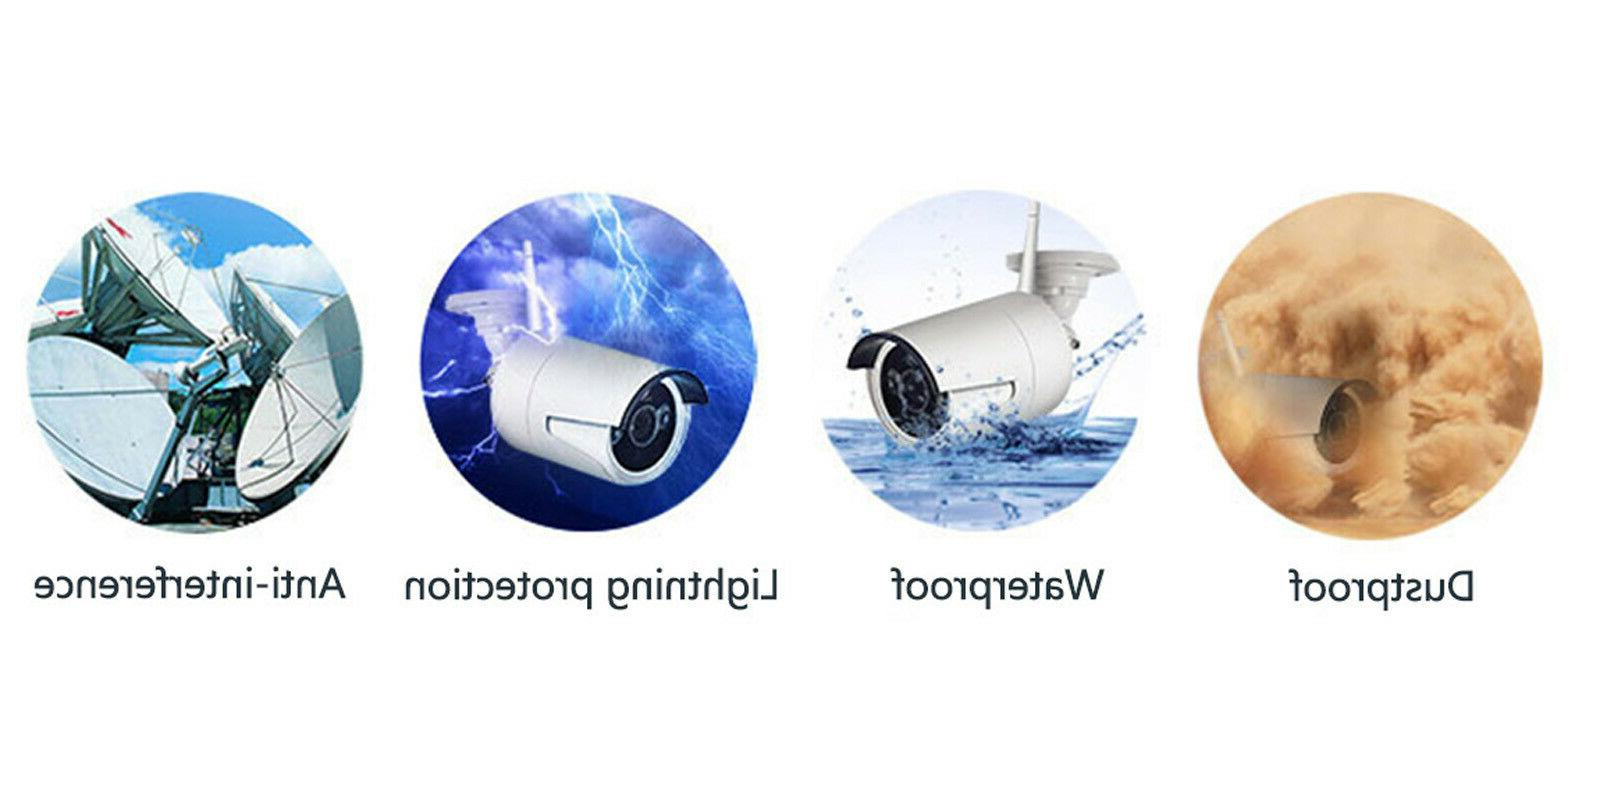 Anni NVR Outdoor Home Camera CCTV Video